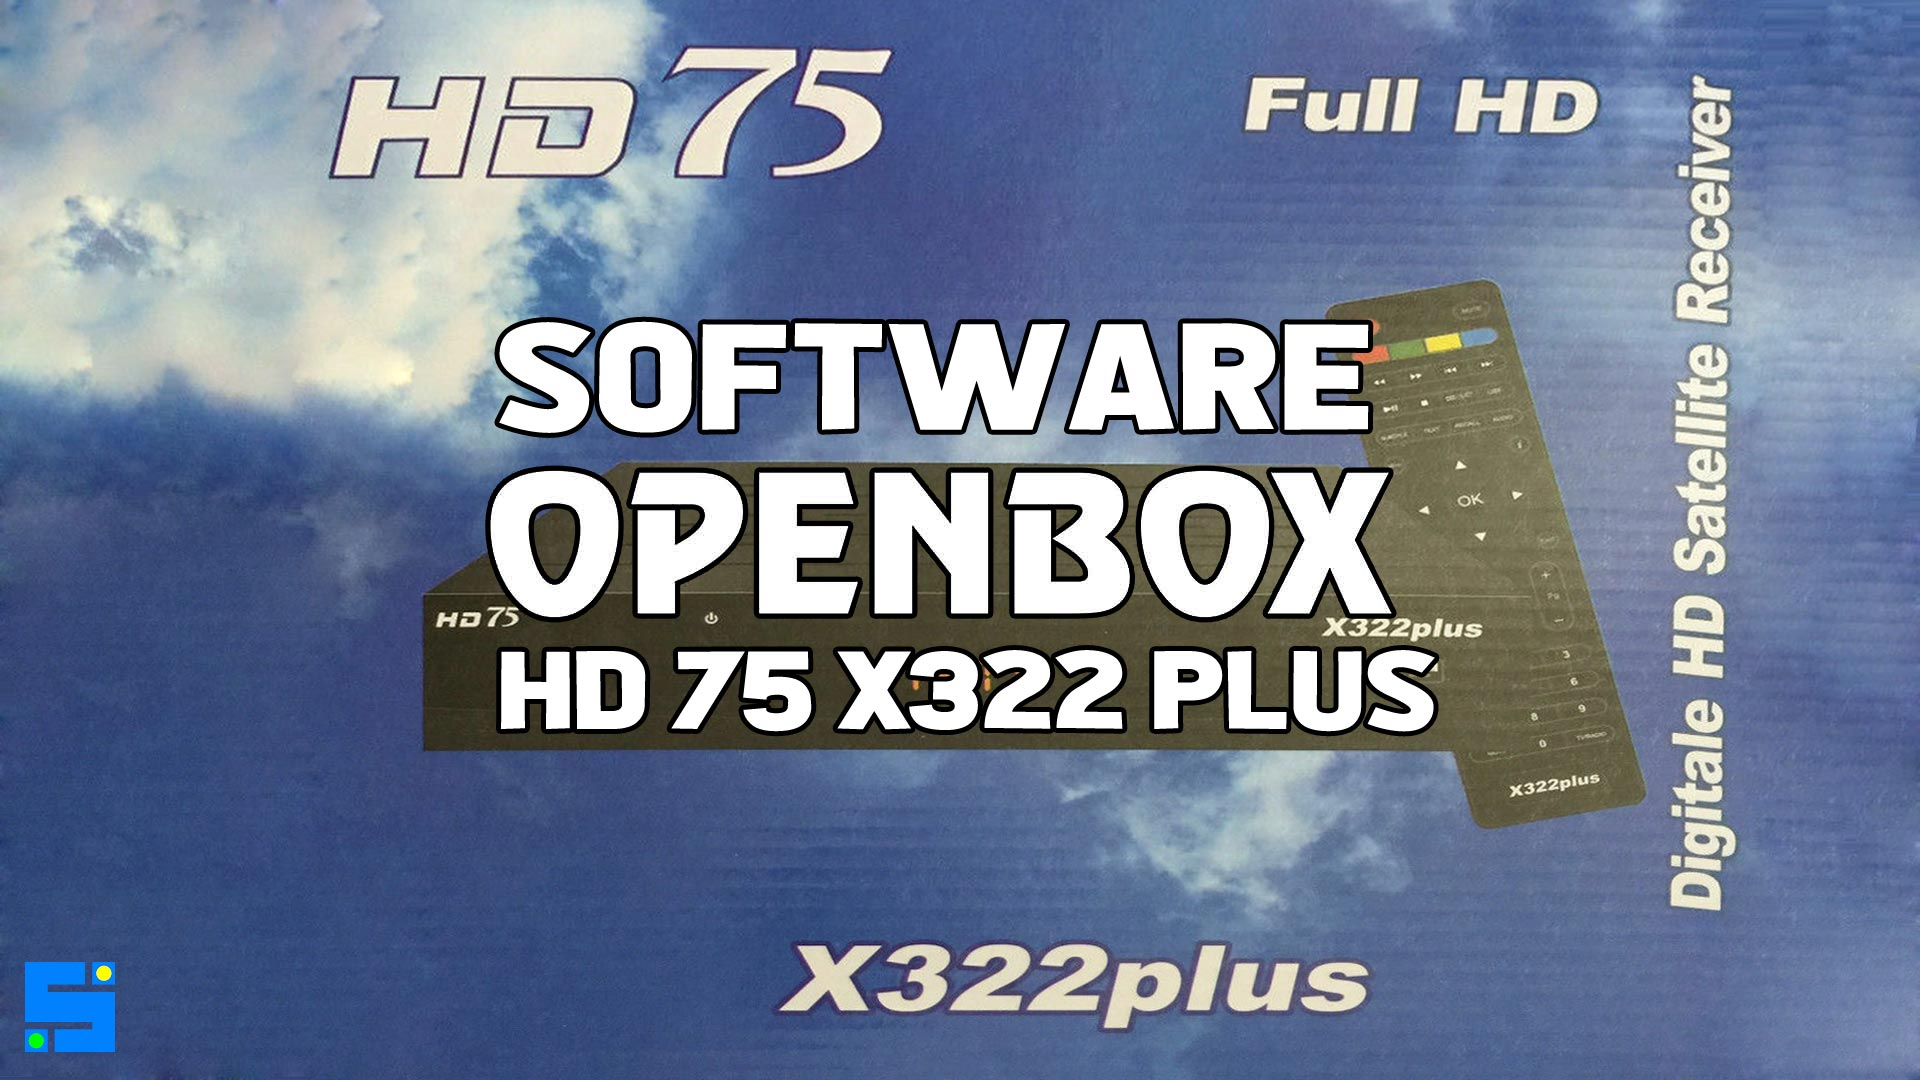 Download Software Openbox Best HD 75 X 322 Plus Firmware Receiver